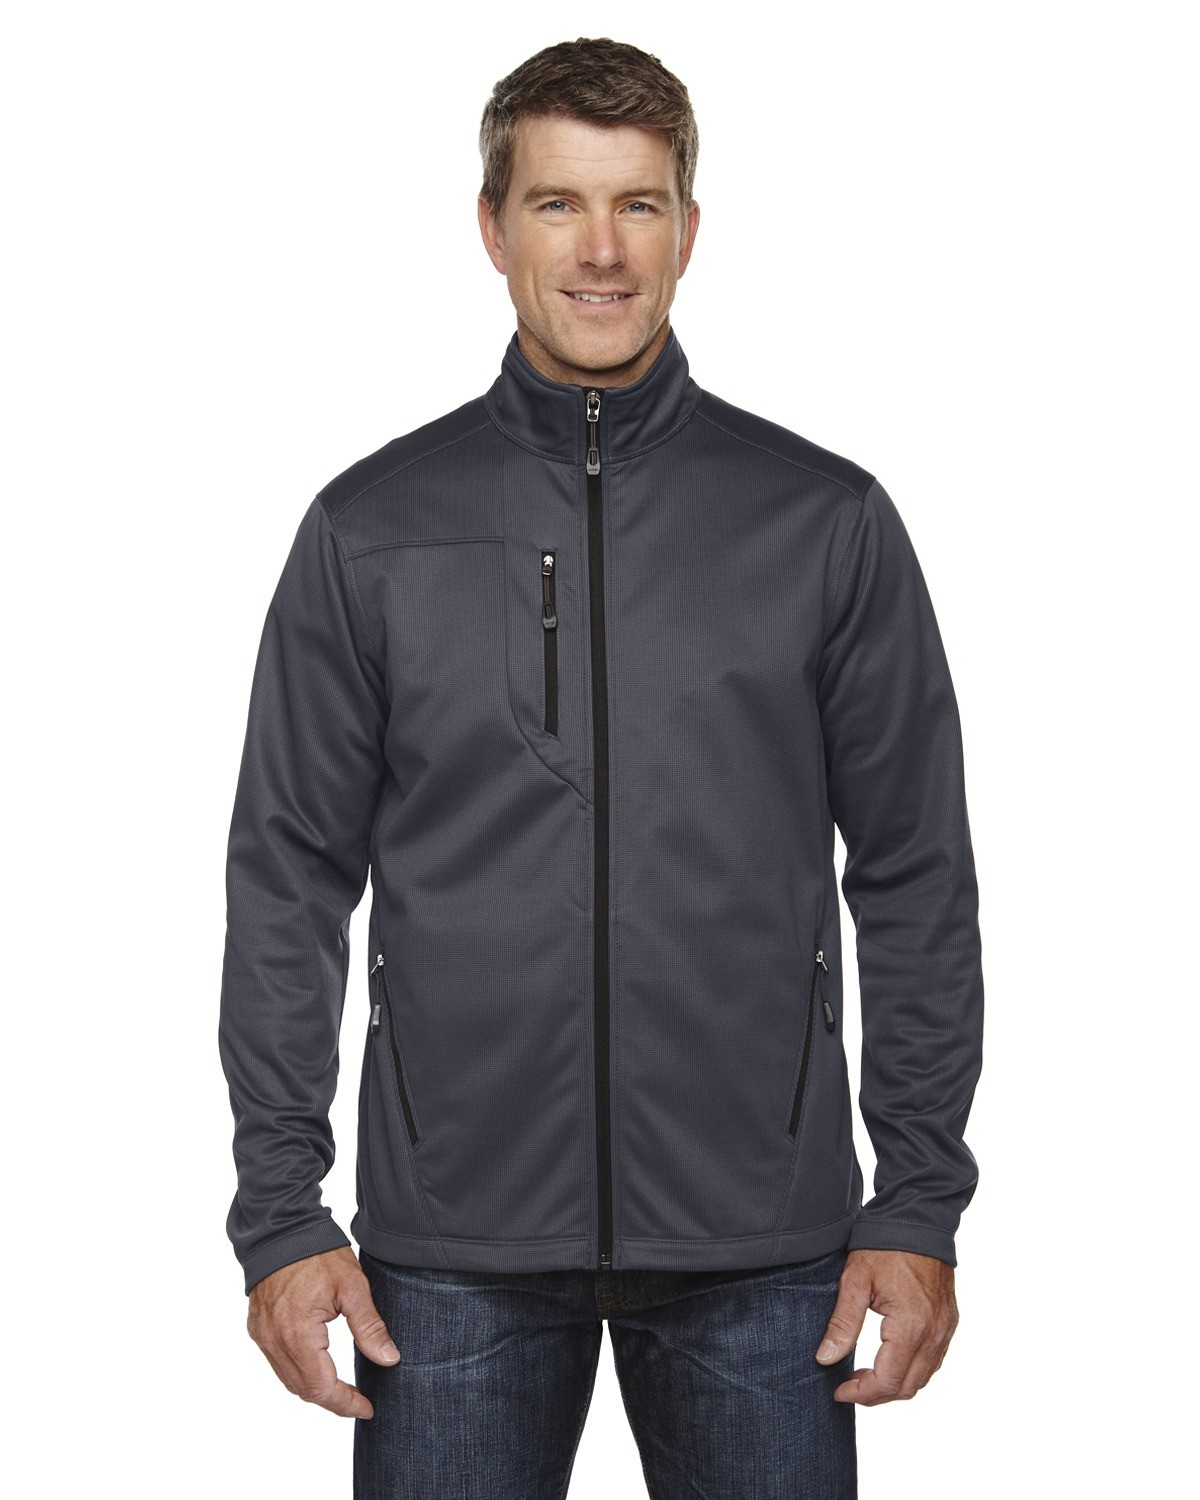 Men's Trace Printed Fleece Jacket